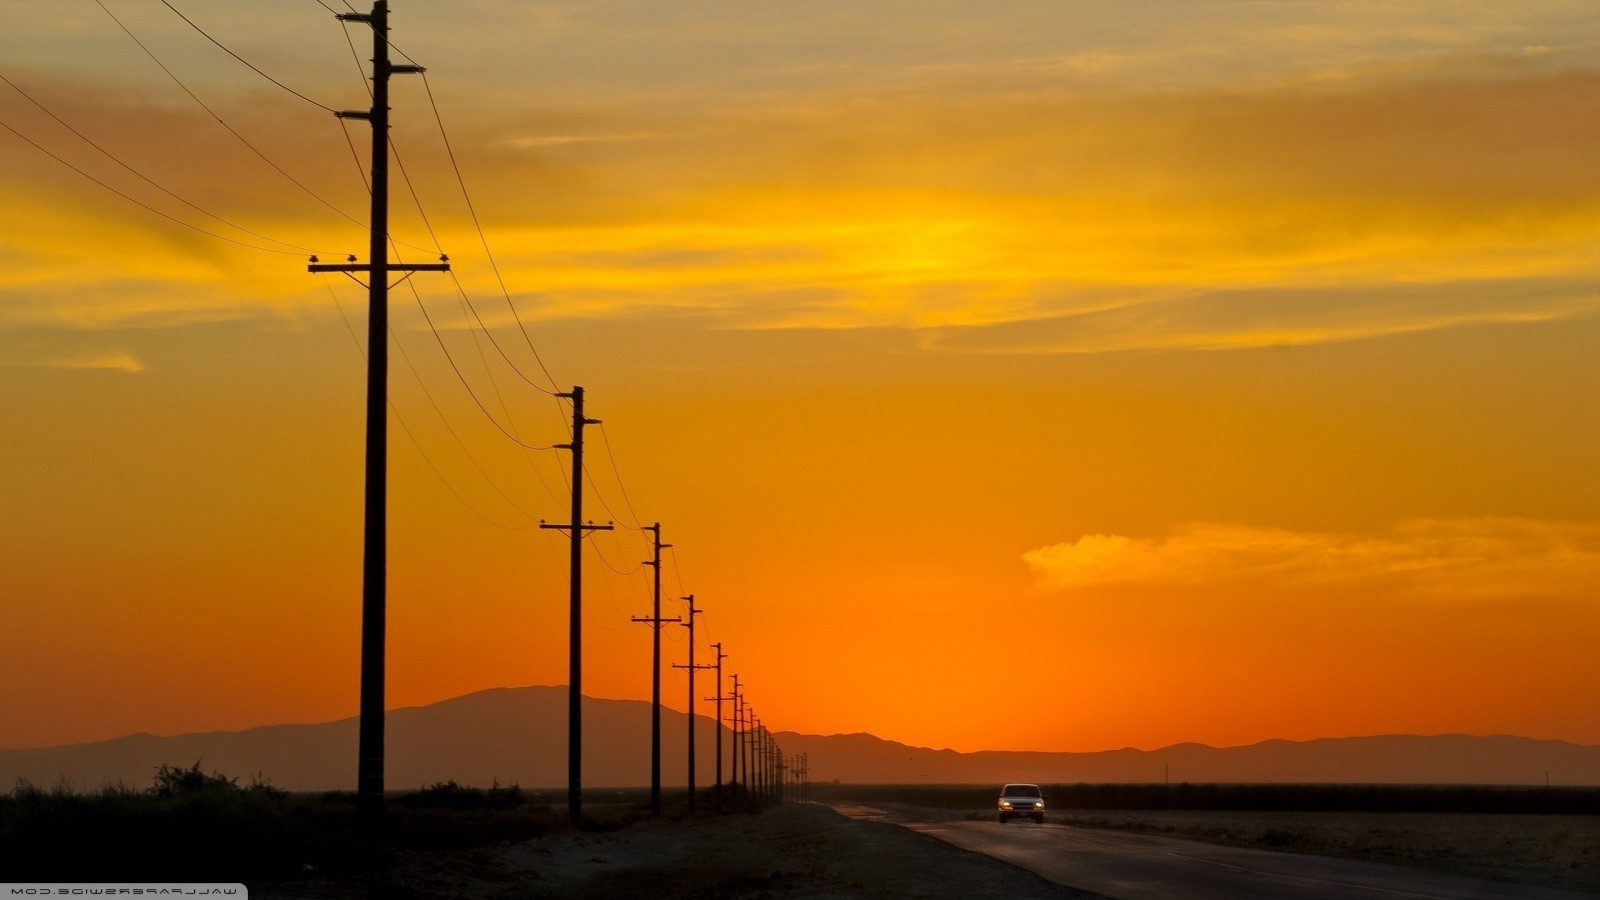 Cosmos Quotes Wallpaper Nature Landscape Power Lines Mountain Sunset Road